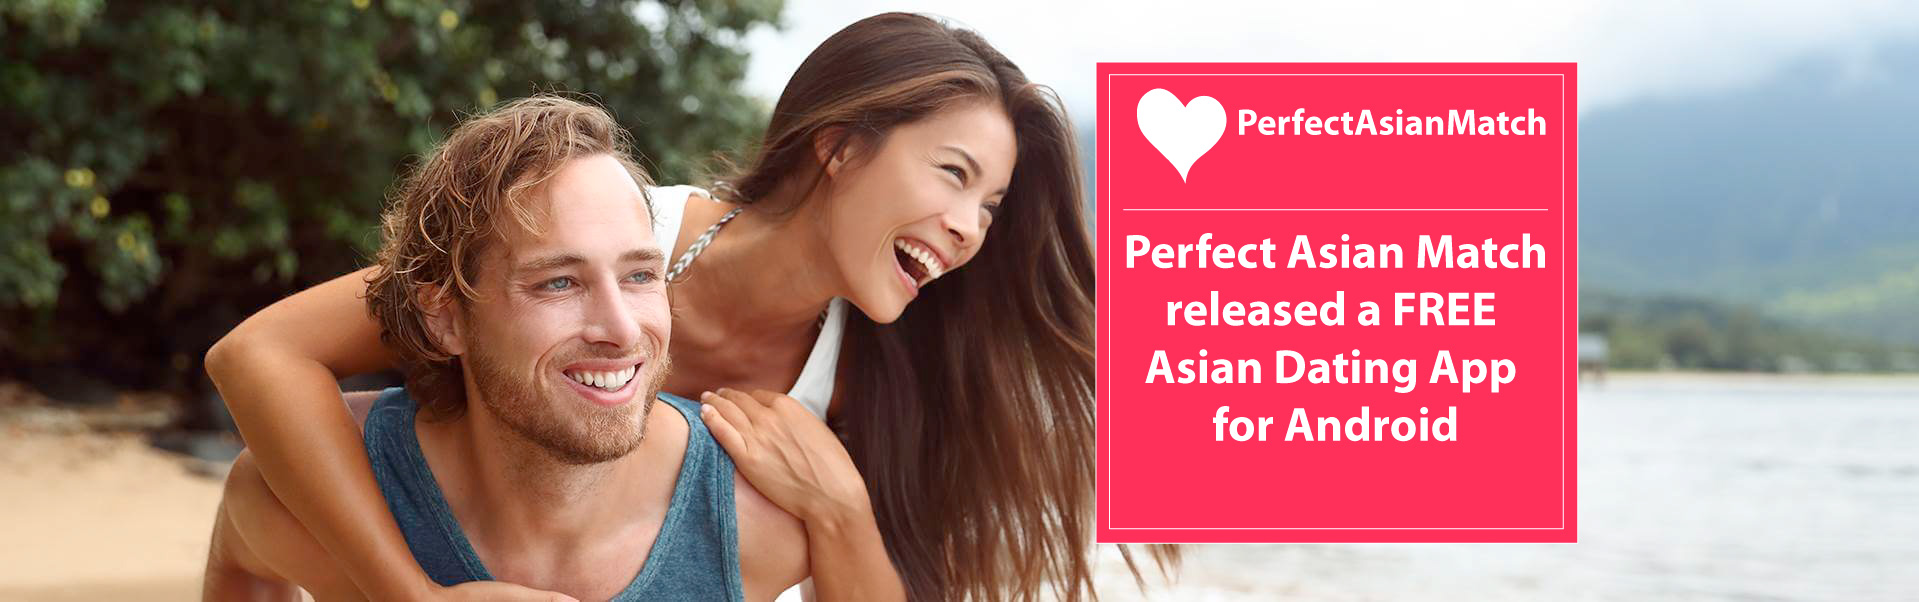 Perfect Asian Match - mobile dating app